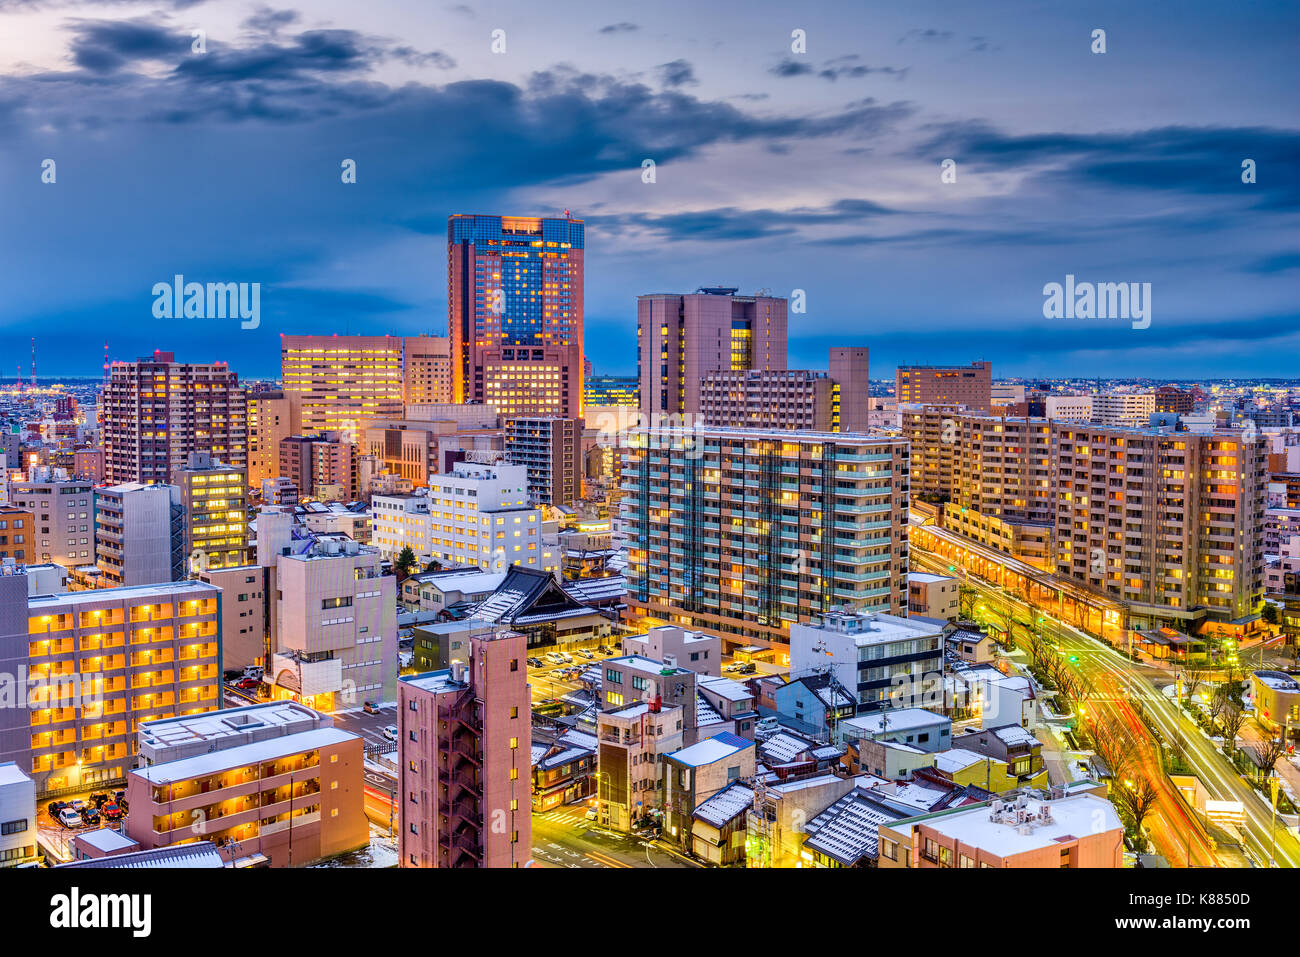 Kanazawa, Japan skyline at dusk. - Stock Image